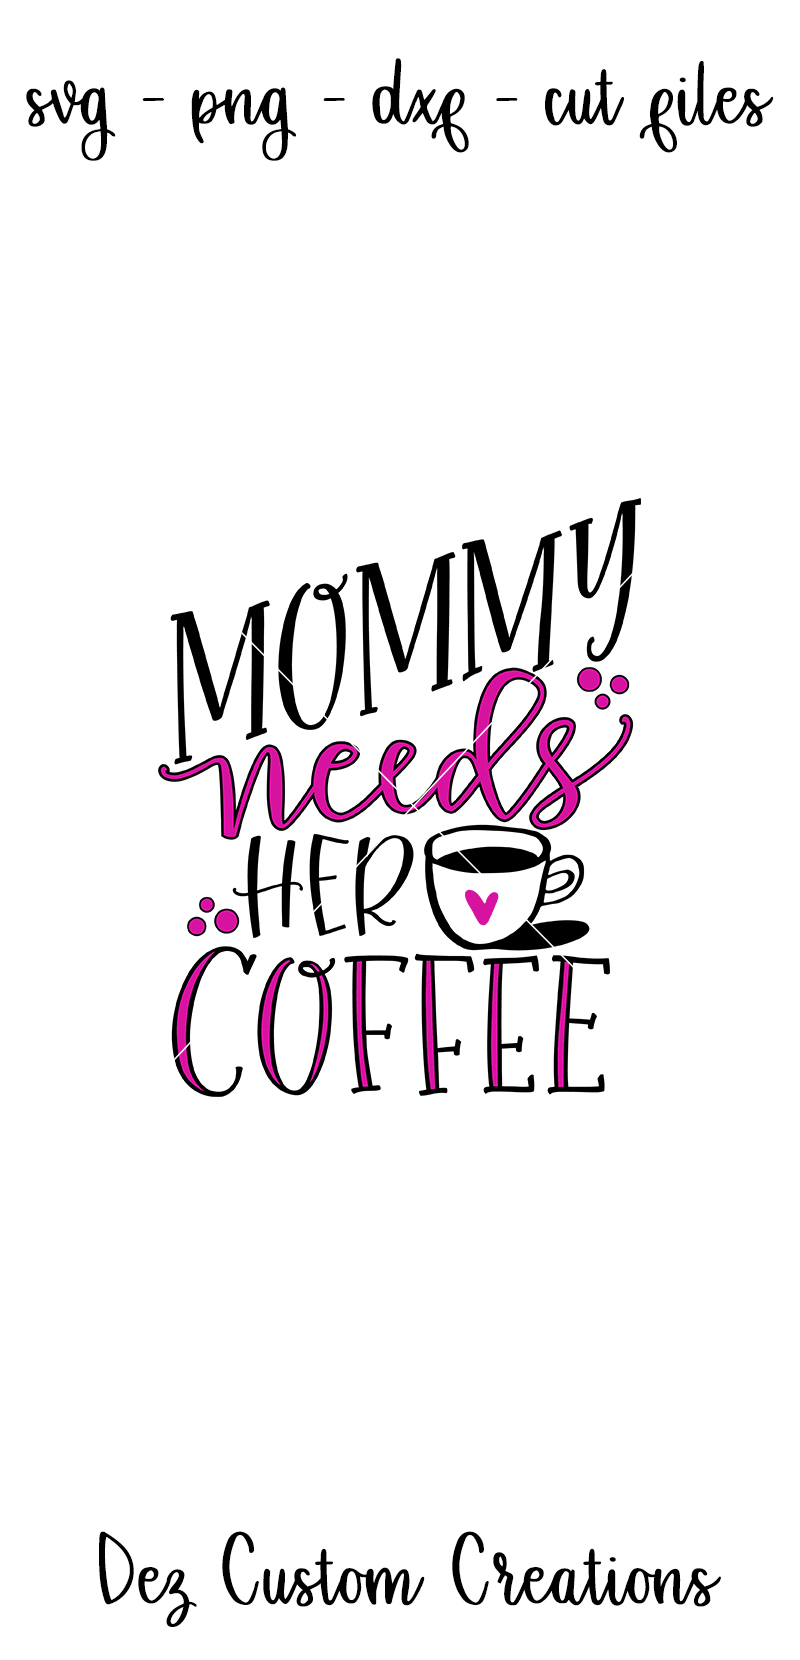 Mommy Needs Her Coffee - SVG DXF PNG File example image 4